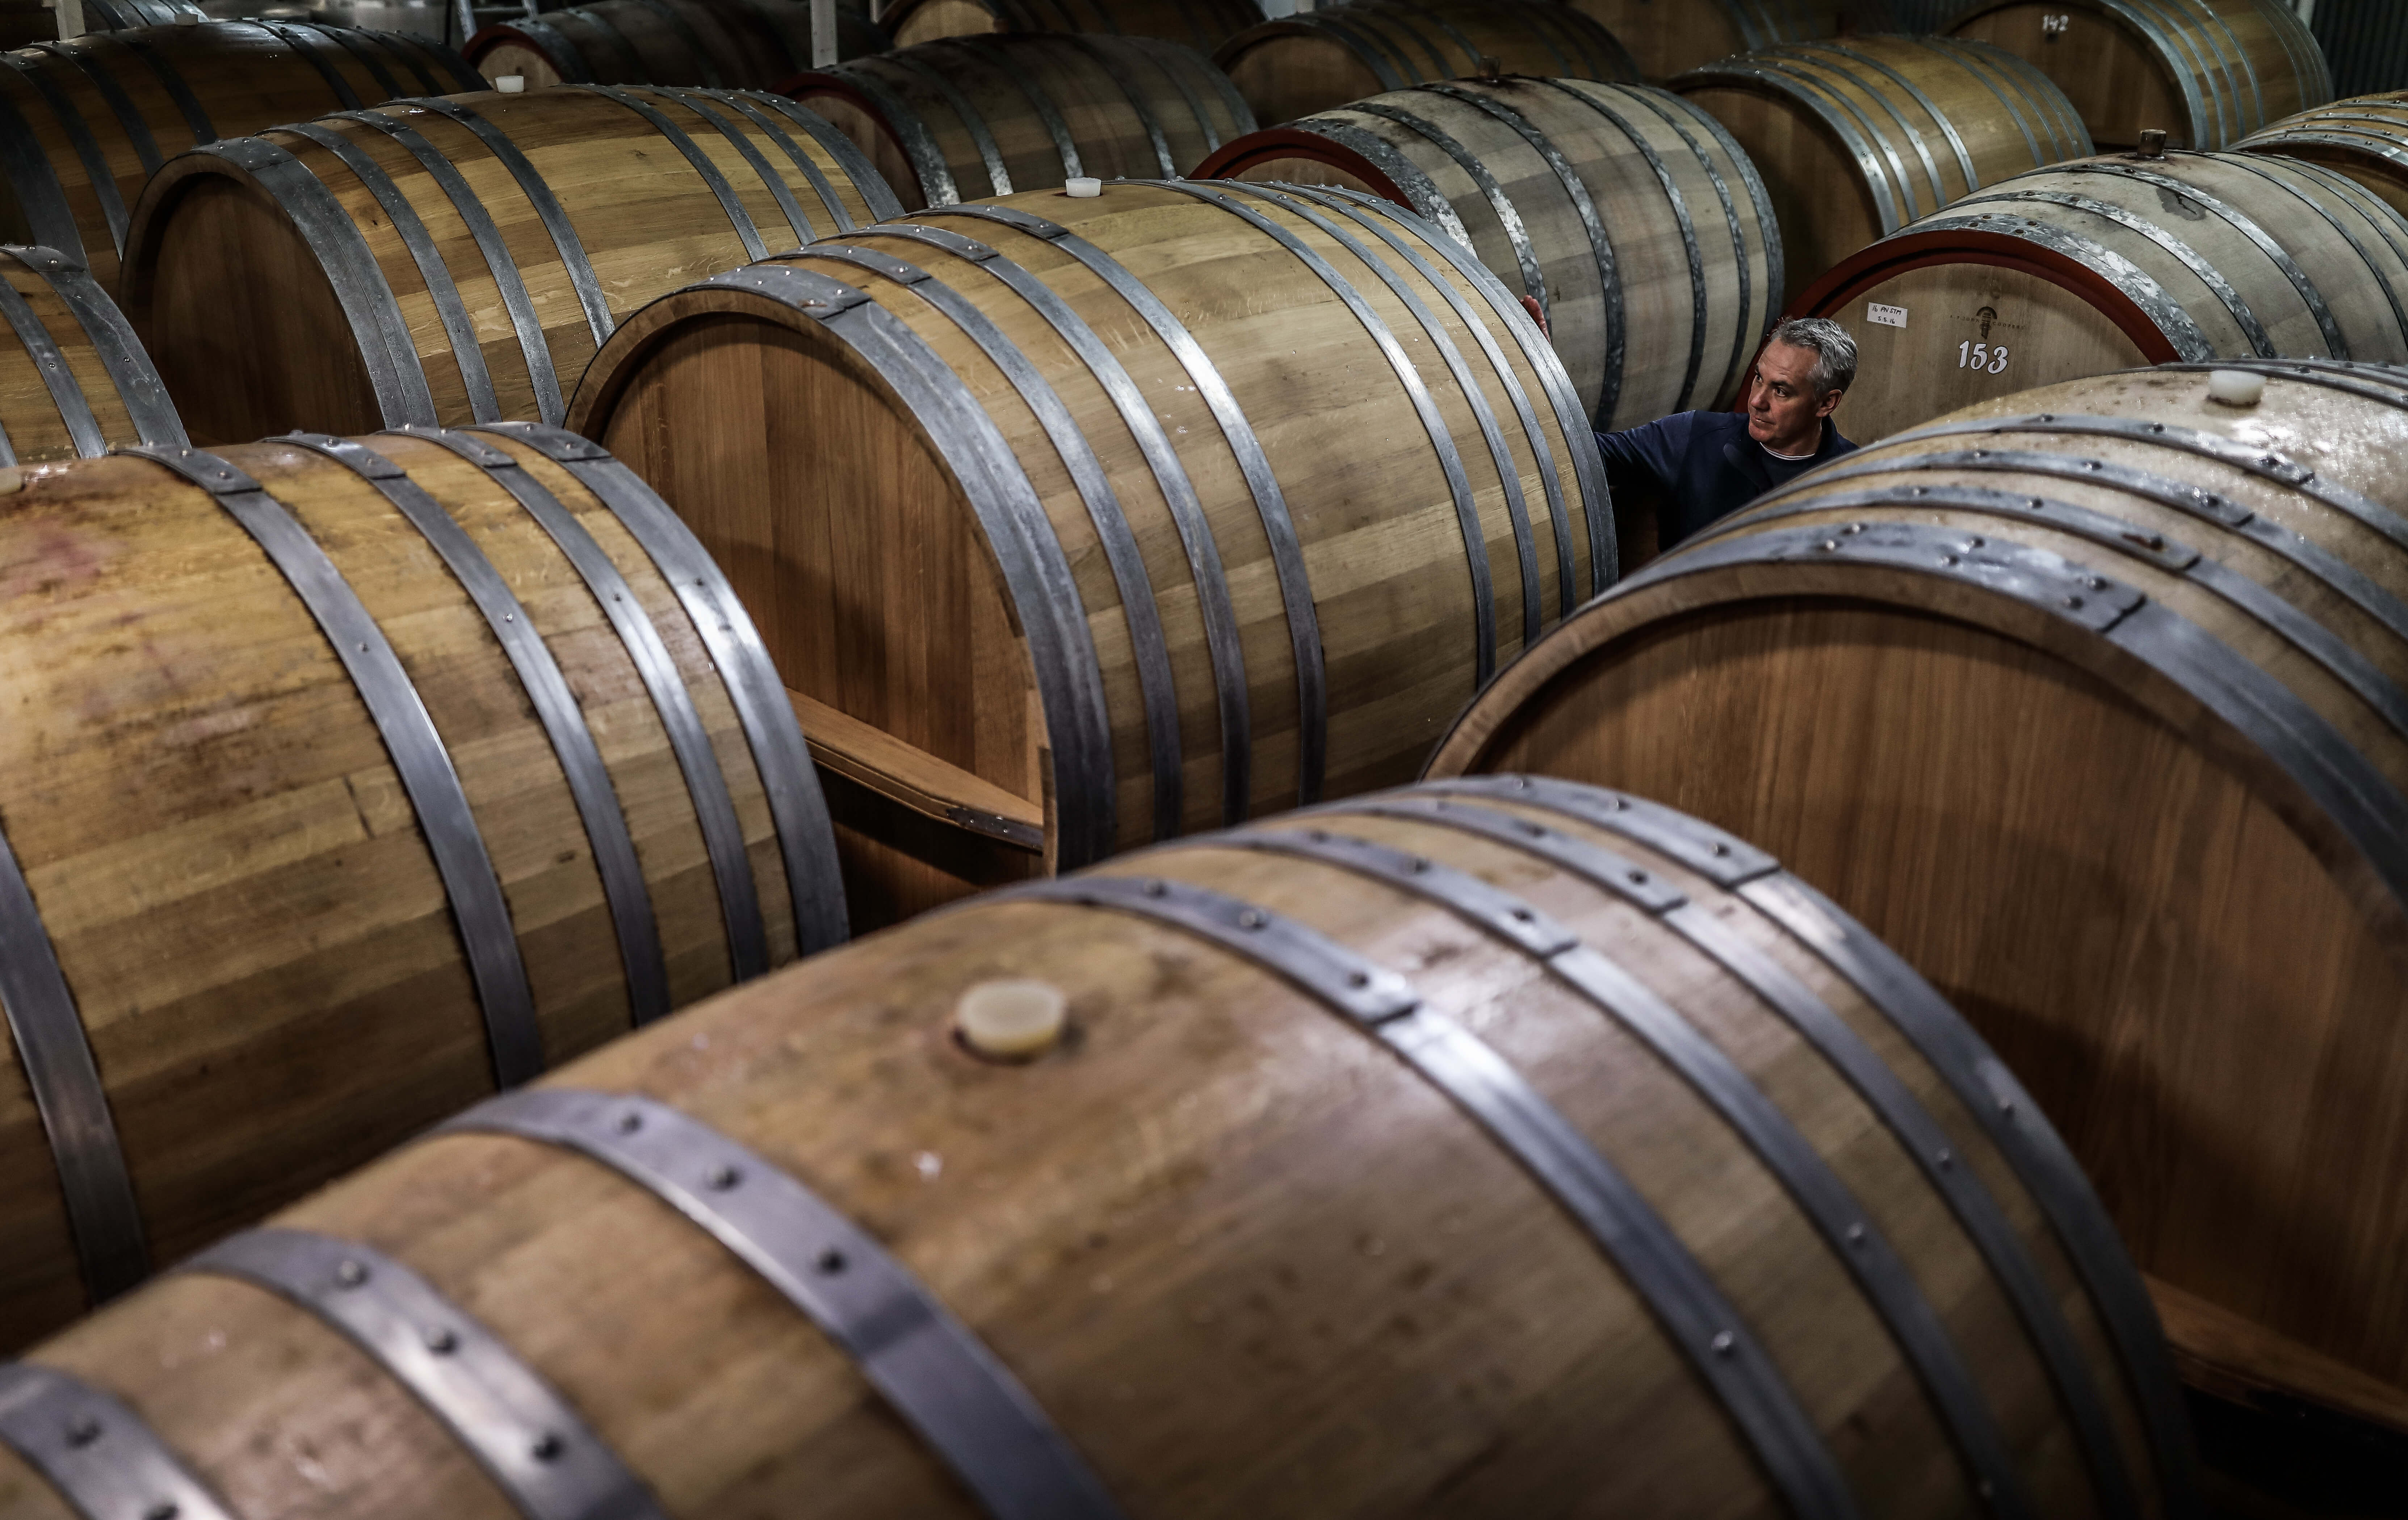 Portrait of a winemaker with wine barrels